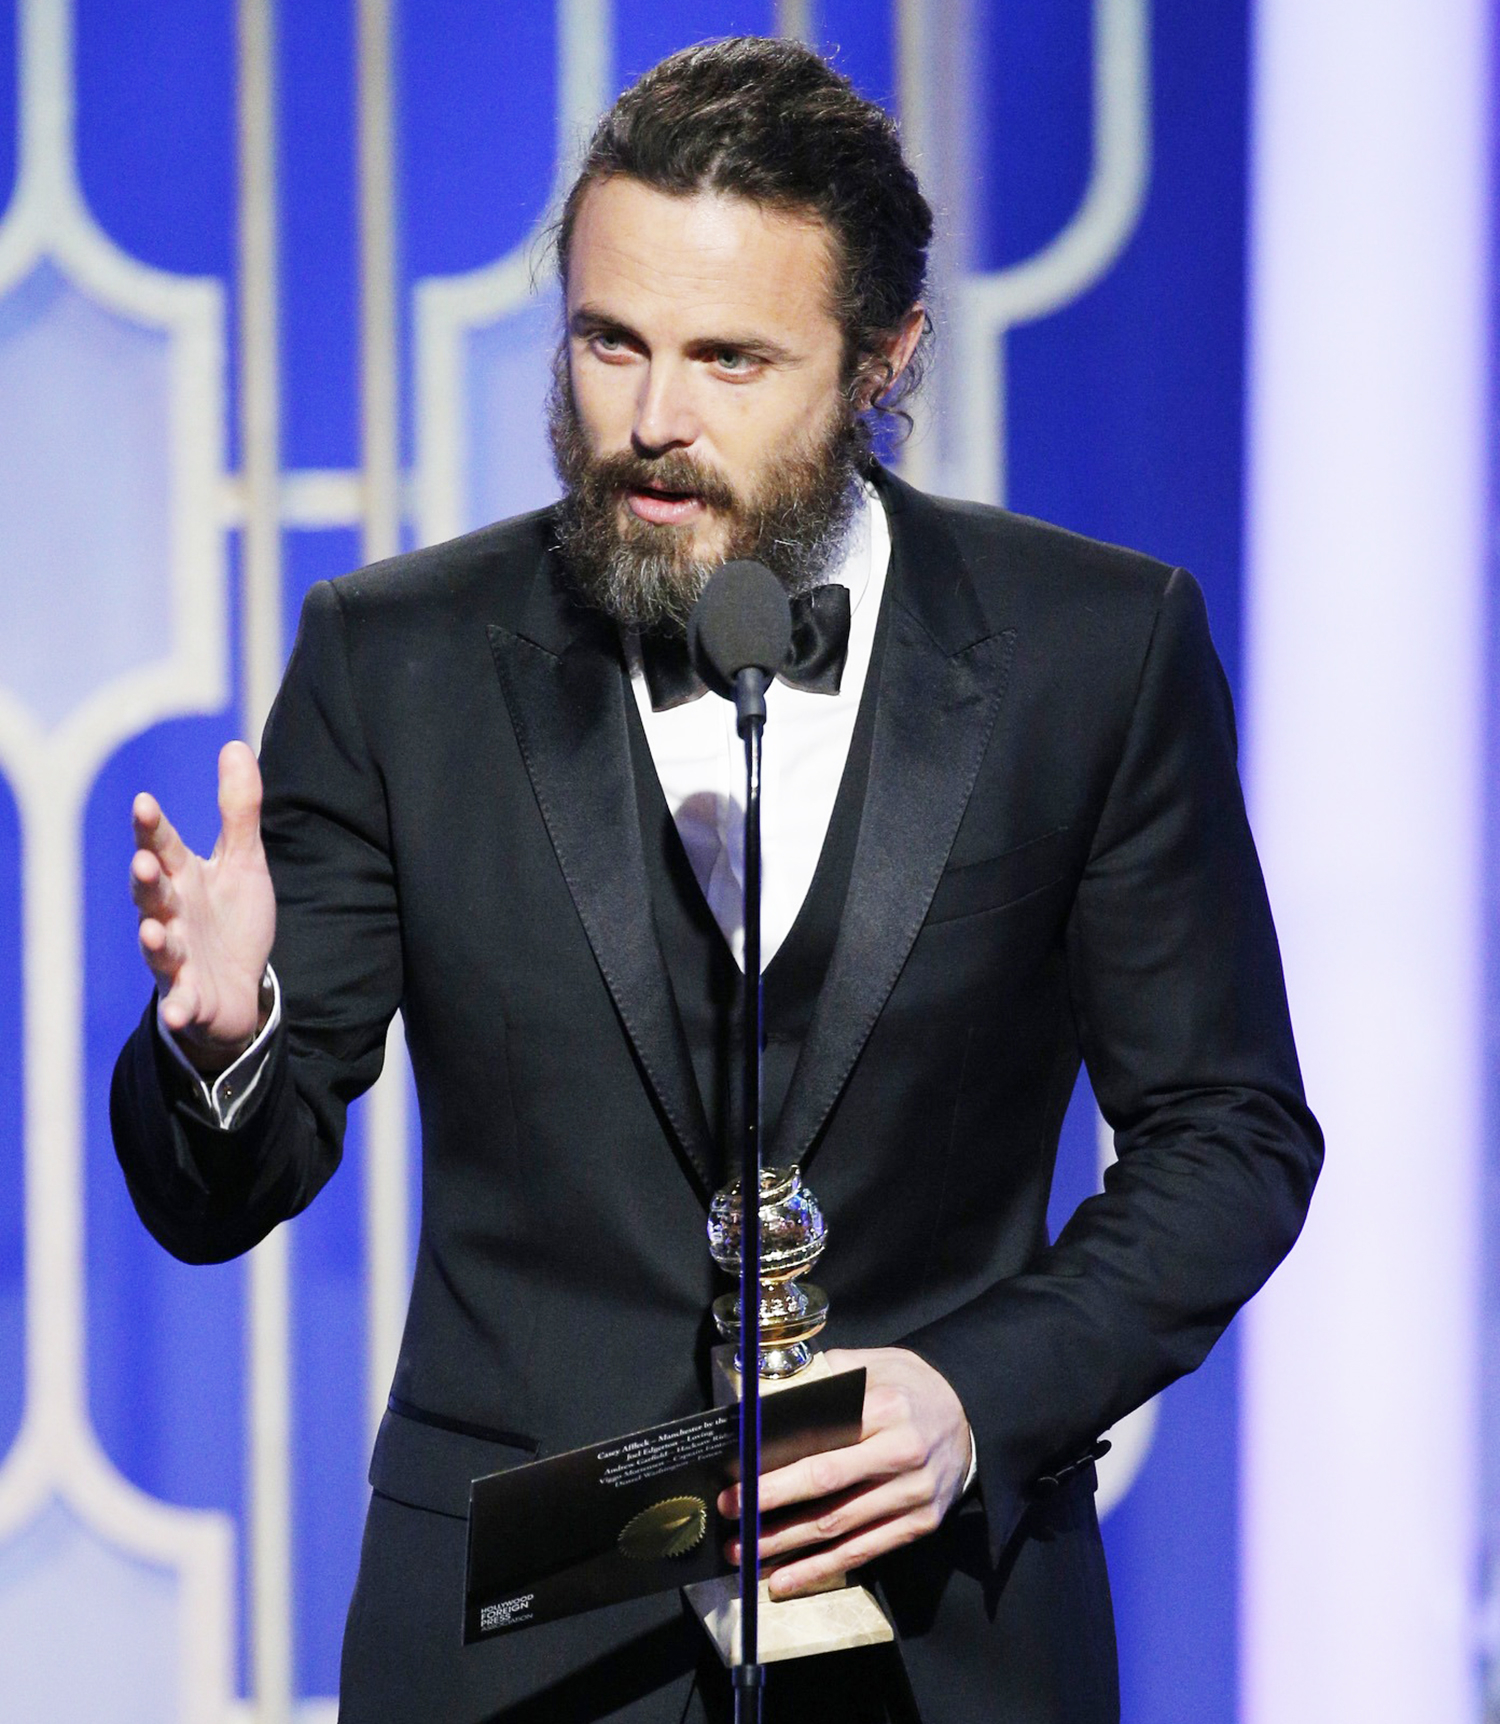 Casey Affleck accepts the award for Best Actor in a Motion Picture - Drama for his role in